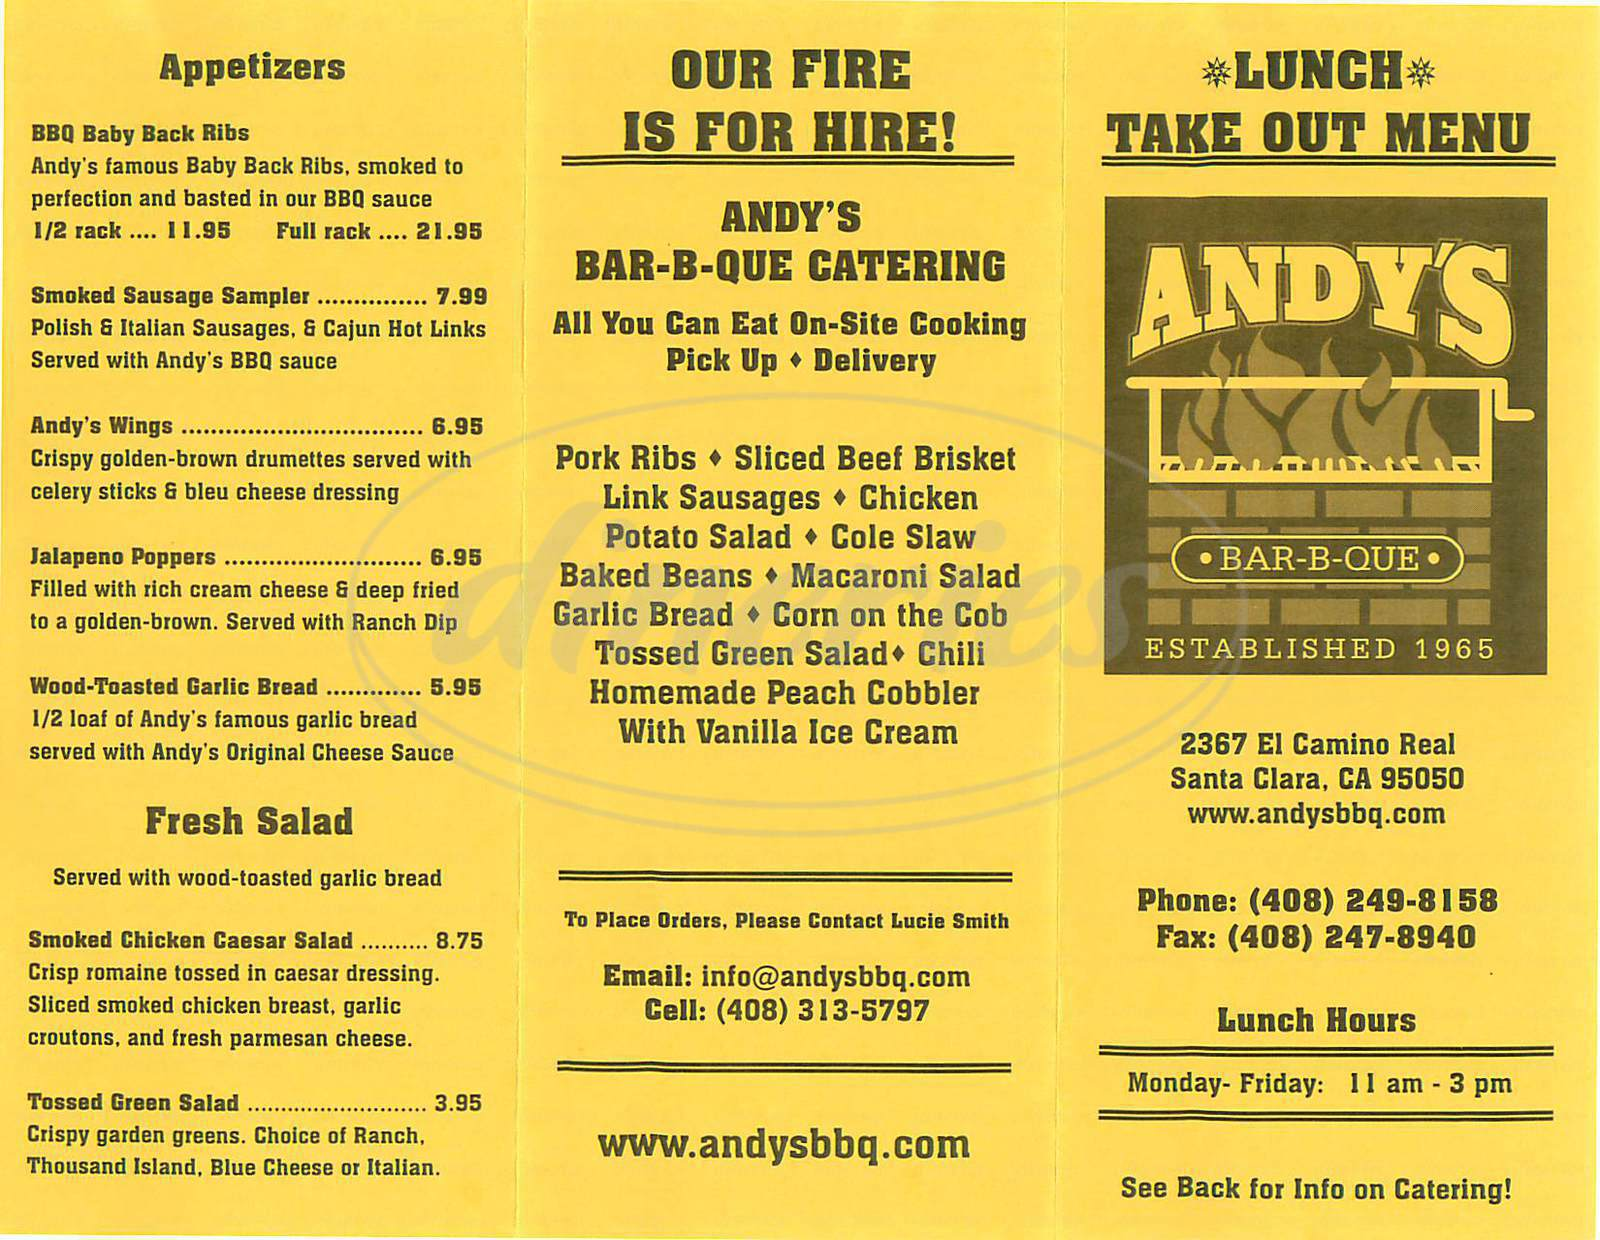 menu for Andy's Bar-B-Que